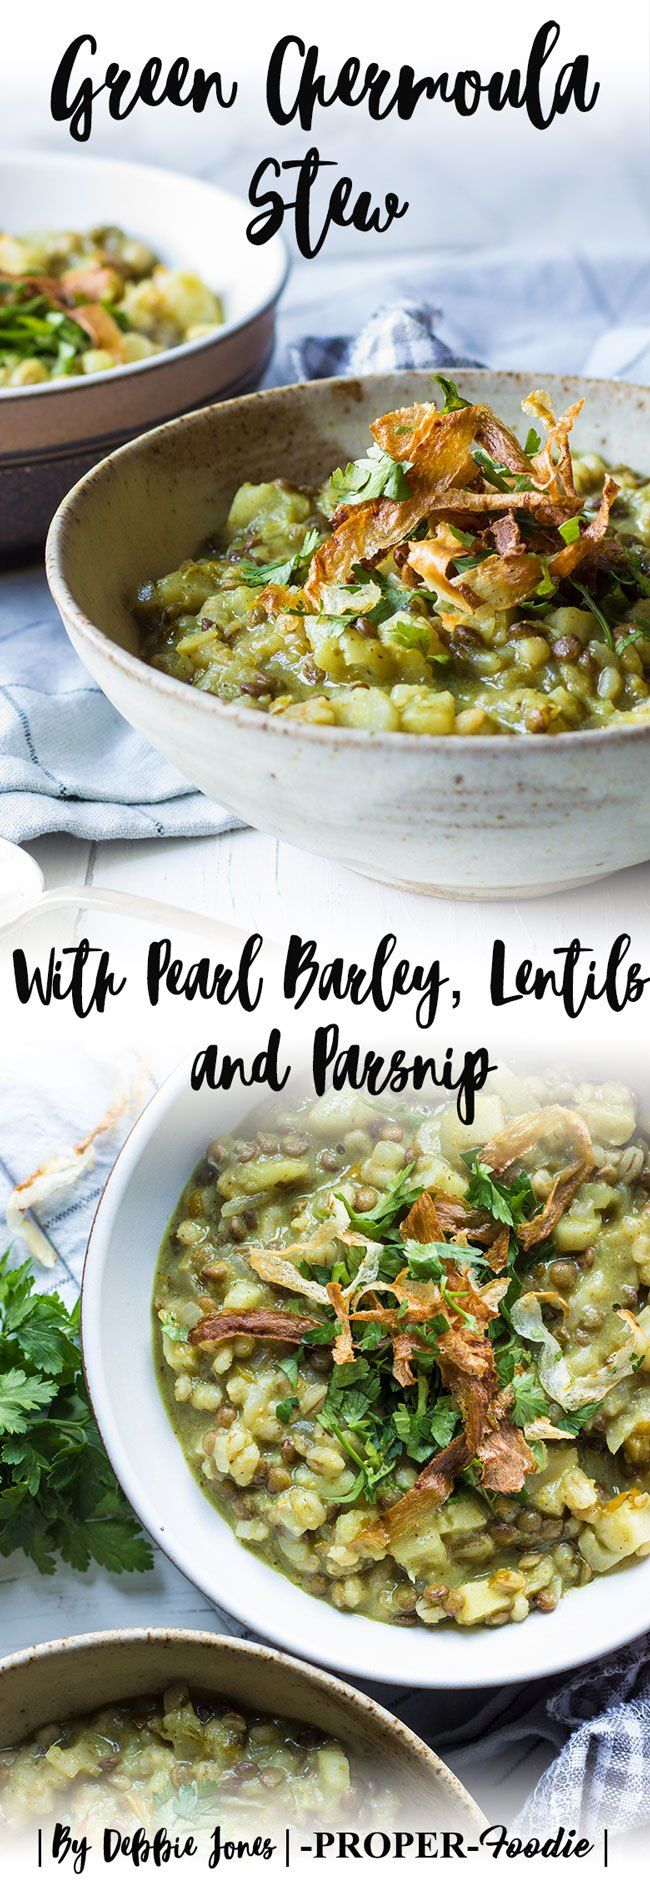 A silky smooth and warming Chermoula veggie stew with parsnips for sweetness, lentils for bulking, and soft pearl barley to bring it all together into a luscious creamy stew.